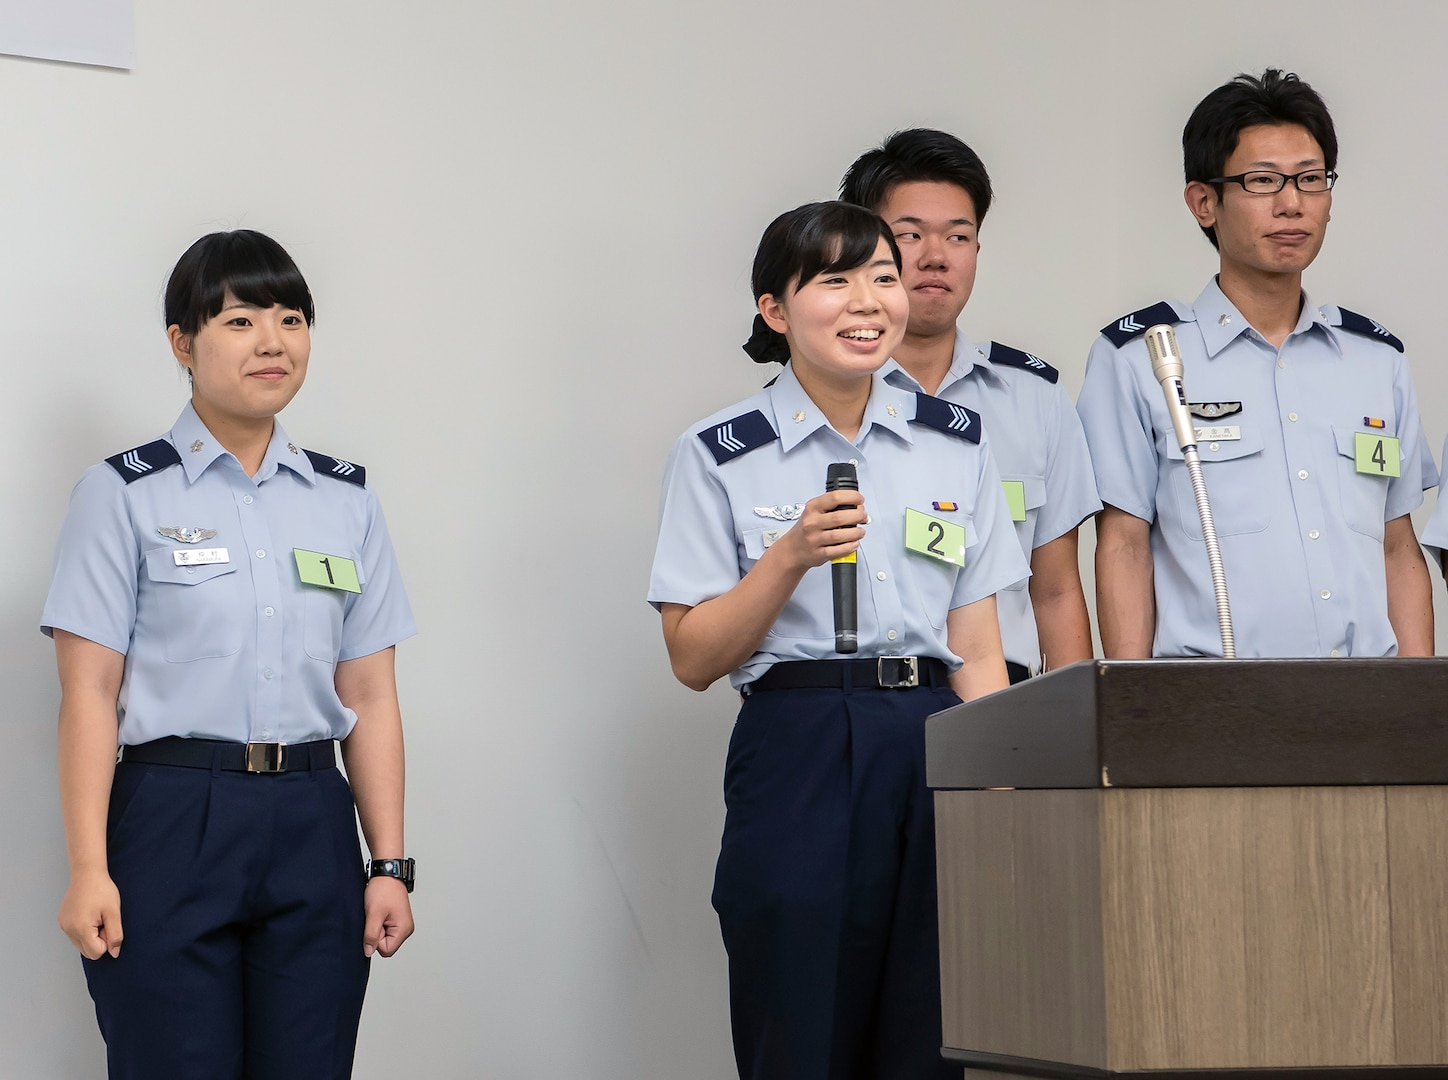 JASDF Airmen compete in English skills contest at Misawa AB